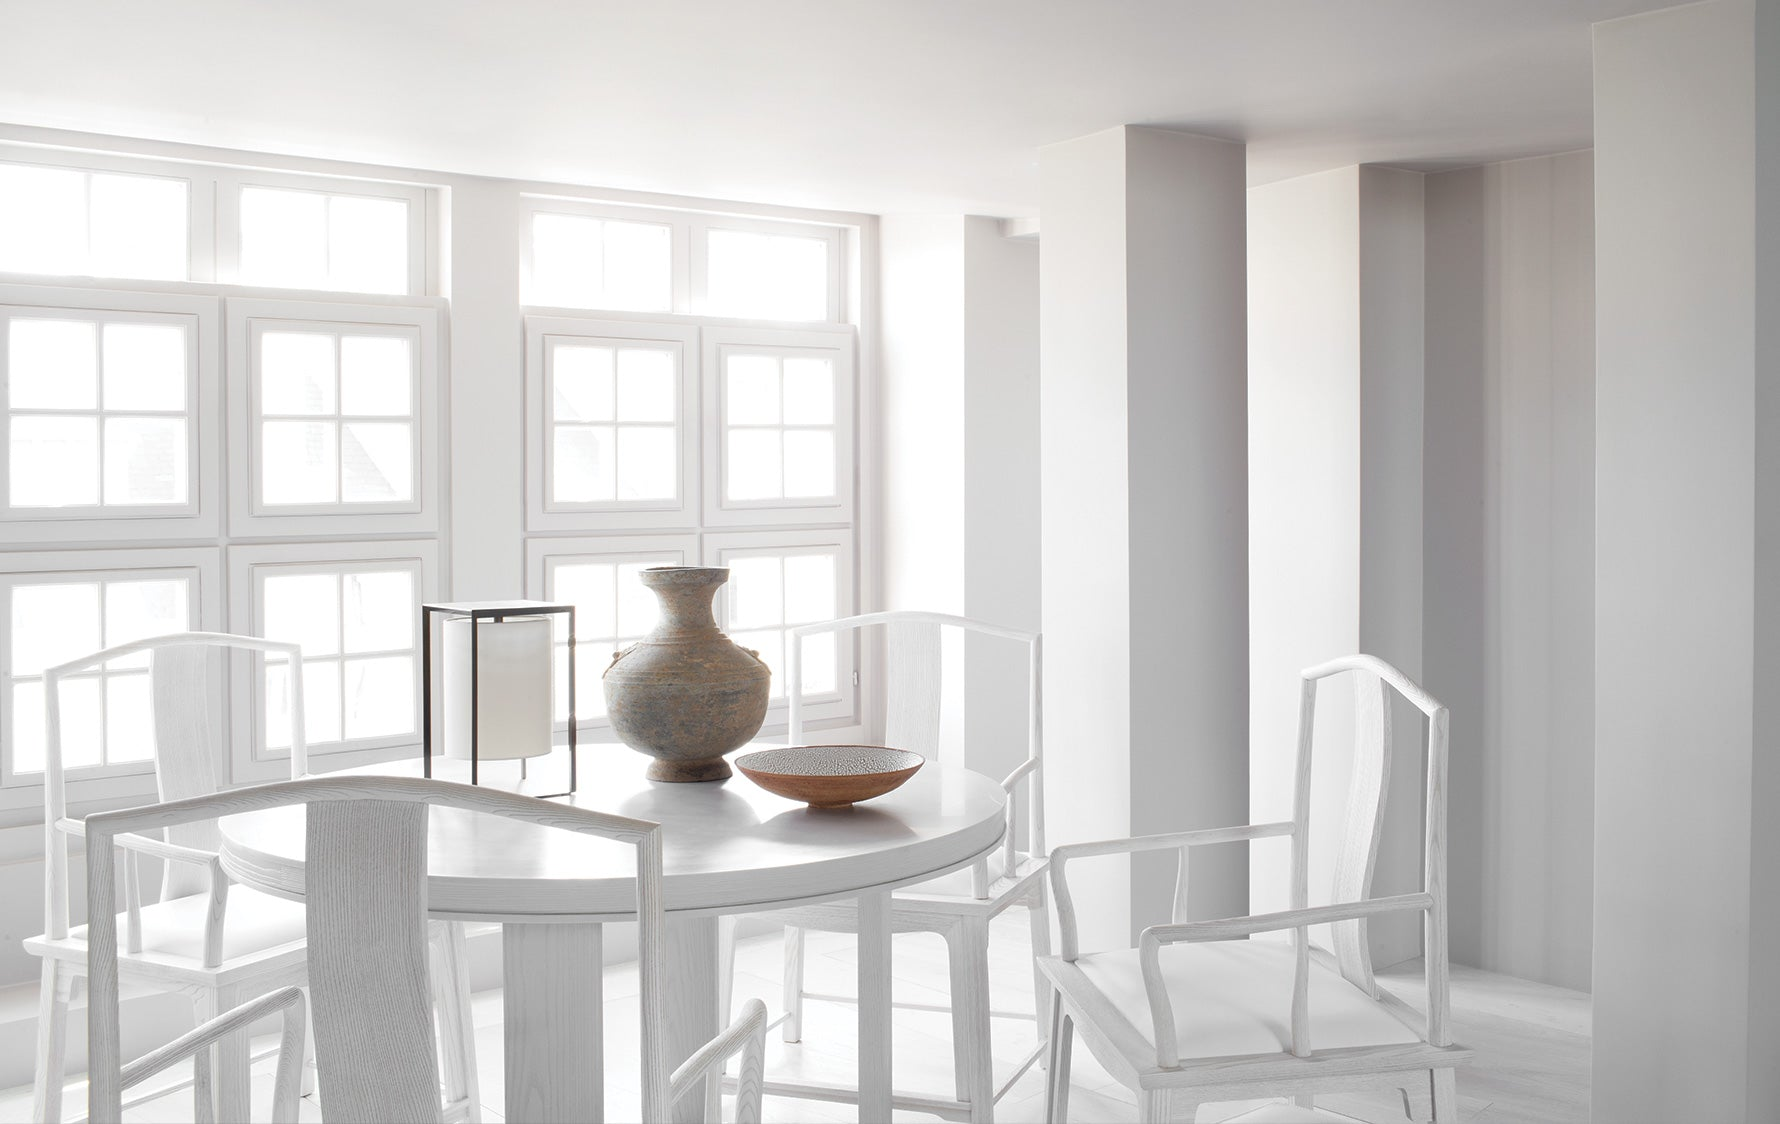 Minimalist Interior Design Dining Room Idea 2 - Guillaume Alan - LuxDeco Style Guide